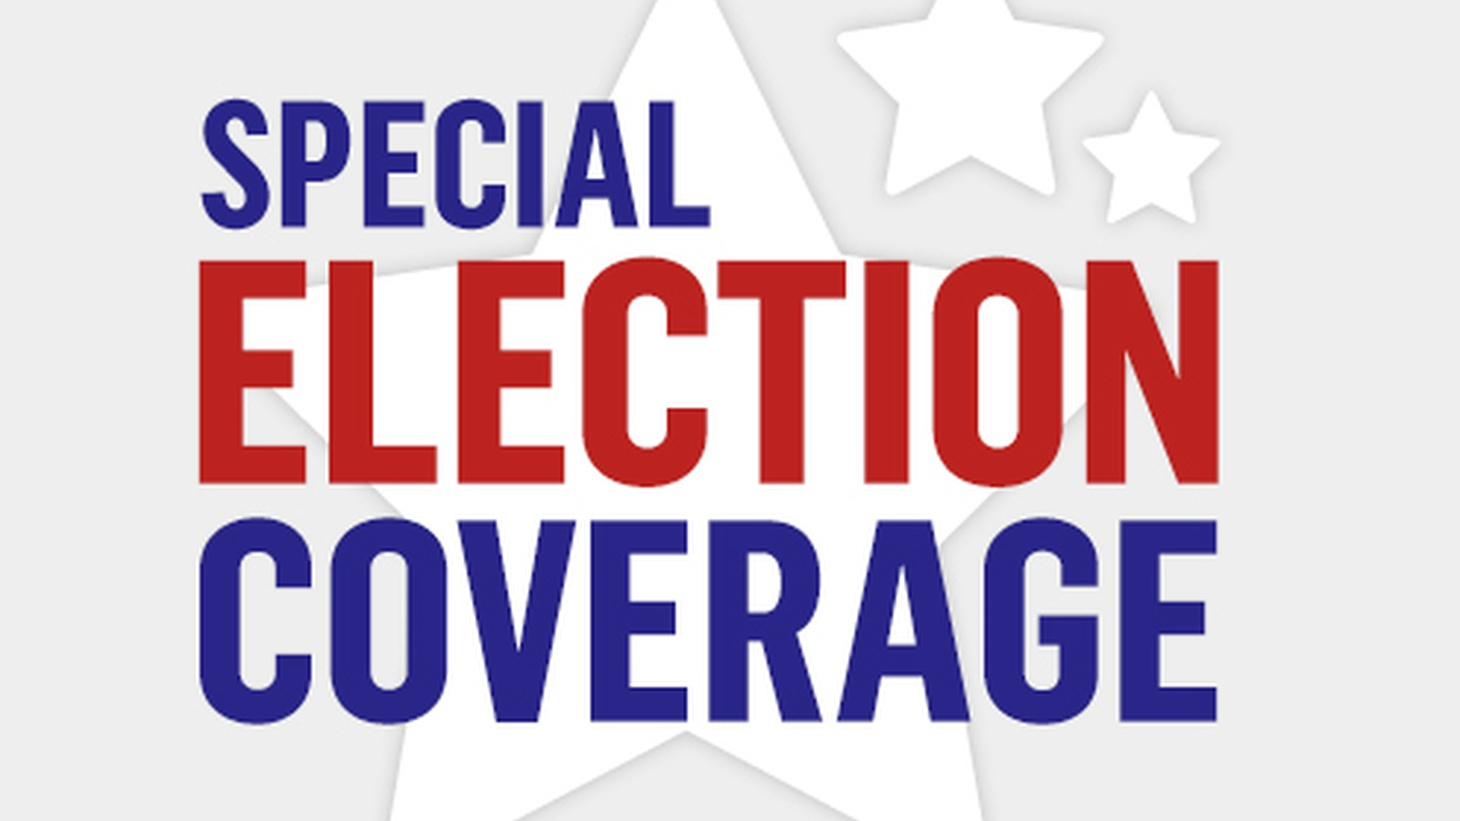 NPR live coverage of primaries in New Jersey, New Mexico, the Dakotas, Montana and, of course, California. Tuesday, June 7, from 5-10pm.